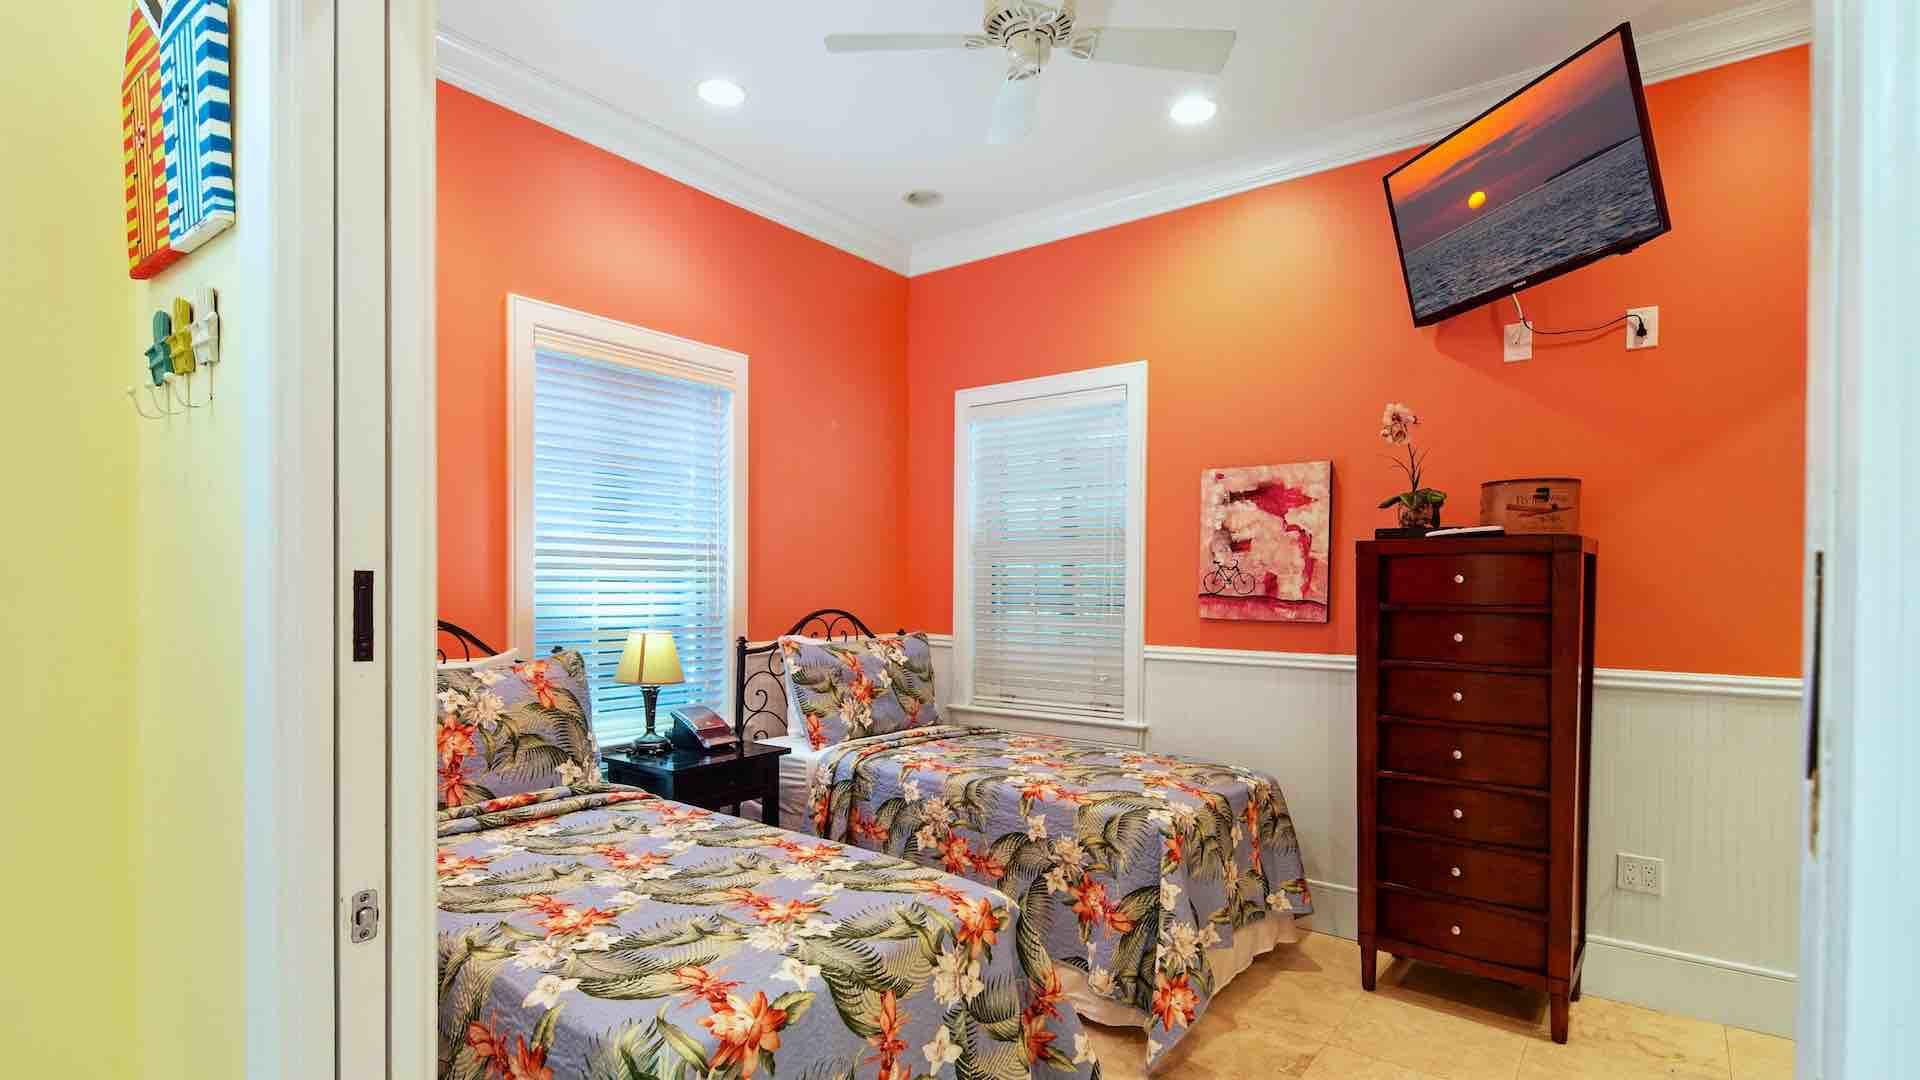 The first bedroom also has an overhead fan and a flat screen TV...